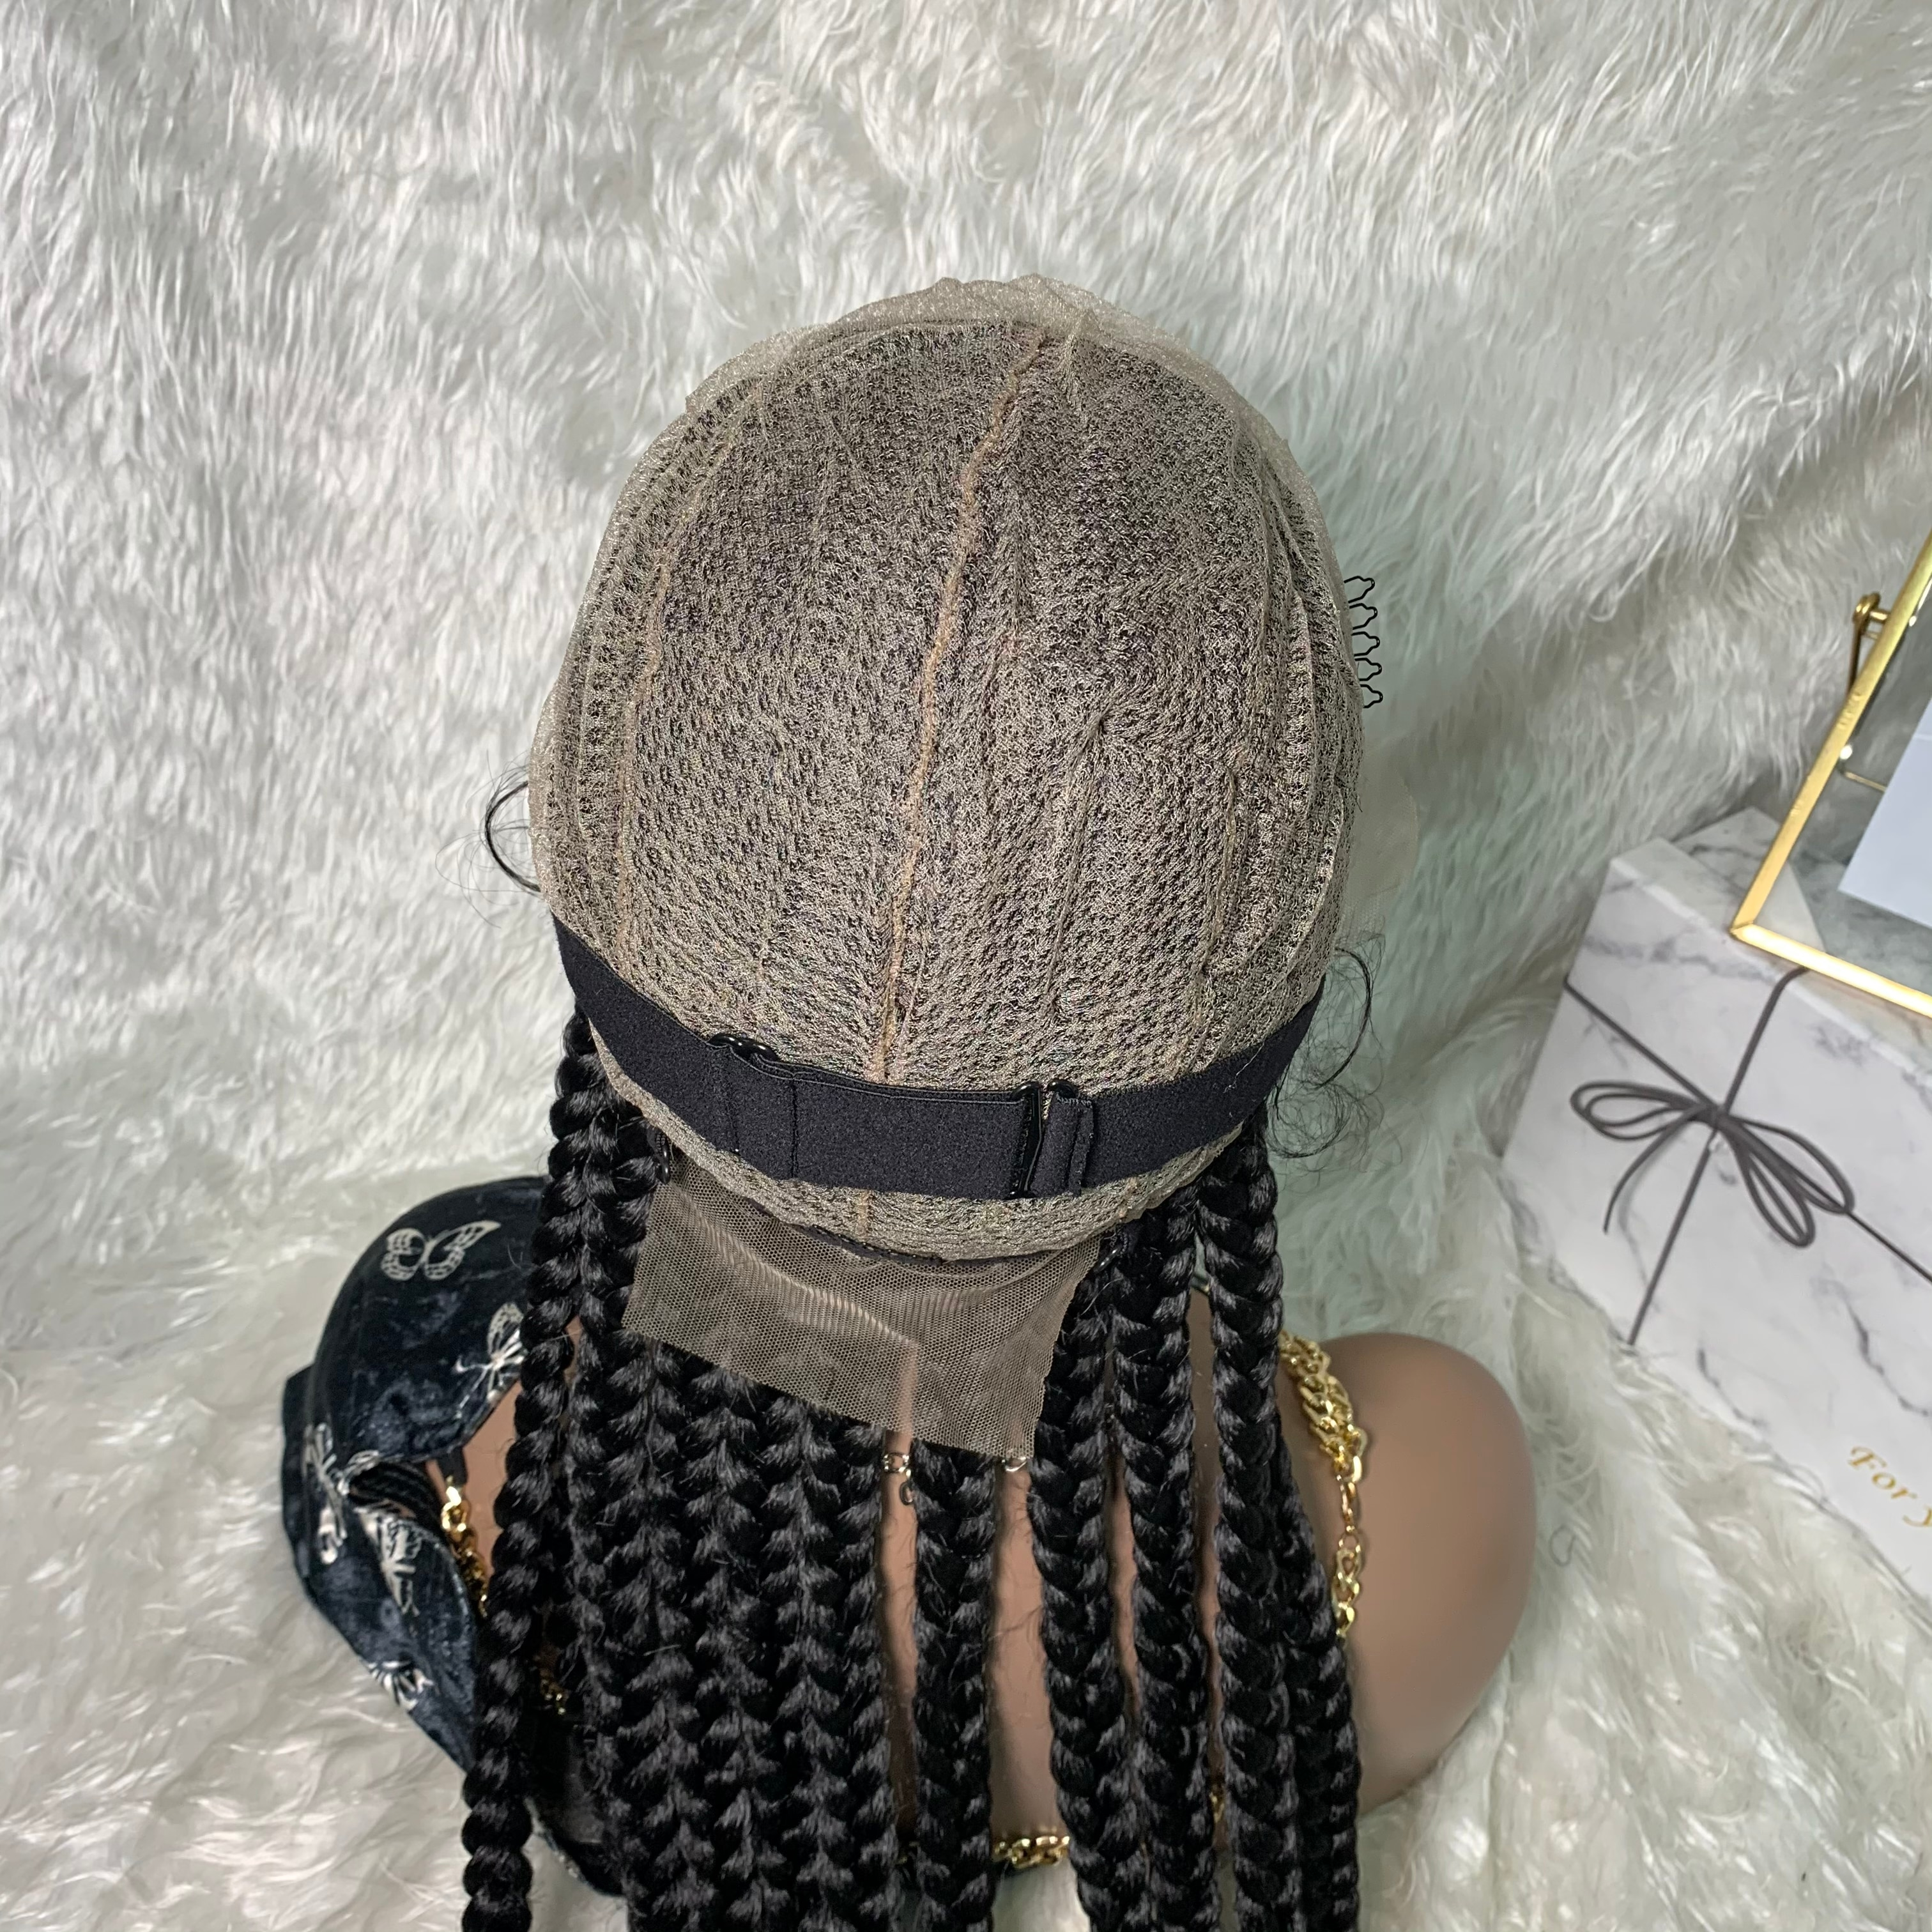 Braided Wigs Lace Front Synthetic Wig Frontal  Box TOOCCI 30 INCH Long Hair Braiding Hair Crochet Braied For Synthetic Black enlarge